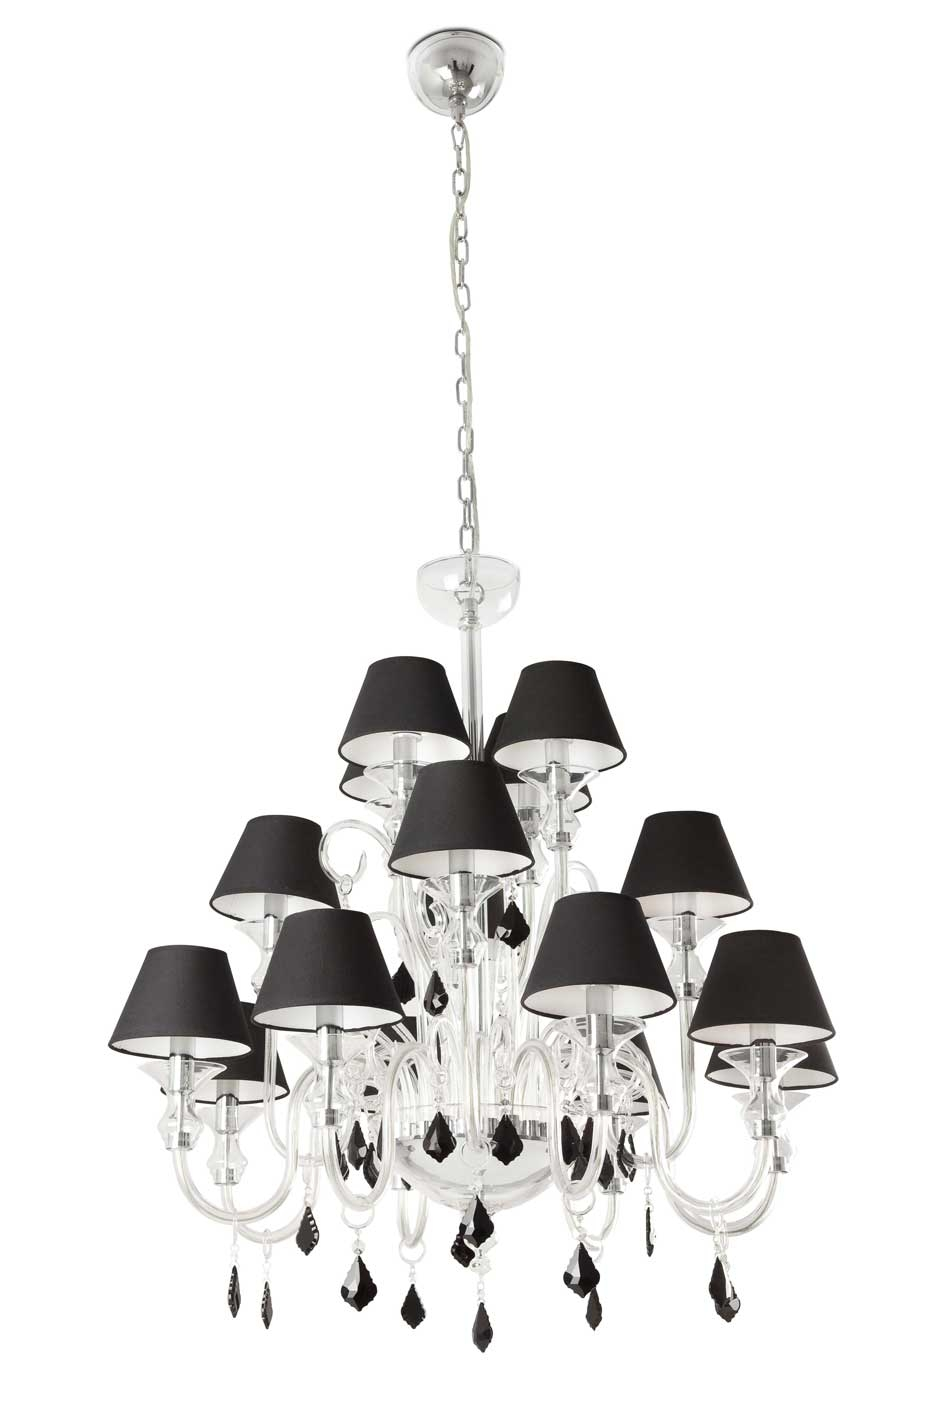 Murano 16 Light Chandelier With Black Shades And Black Crystal Within Chandeliers With Black Shades (Image 19 of 25)